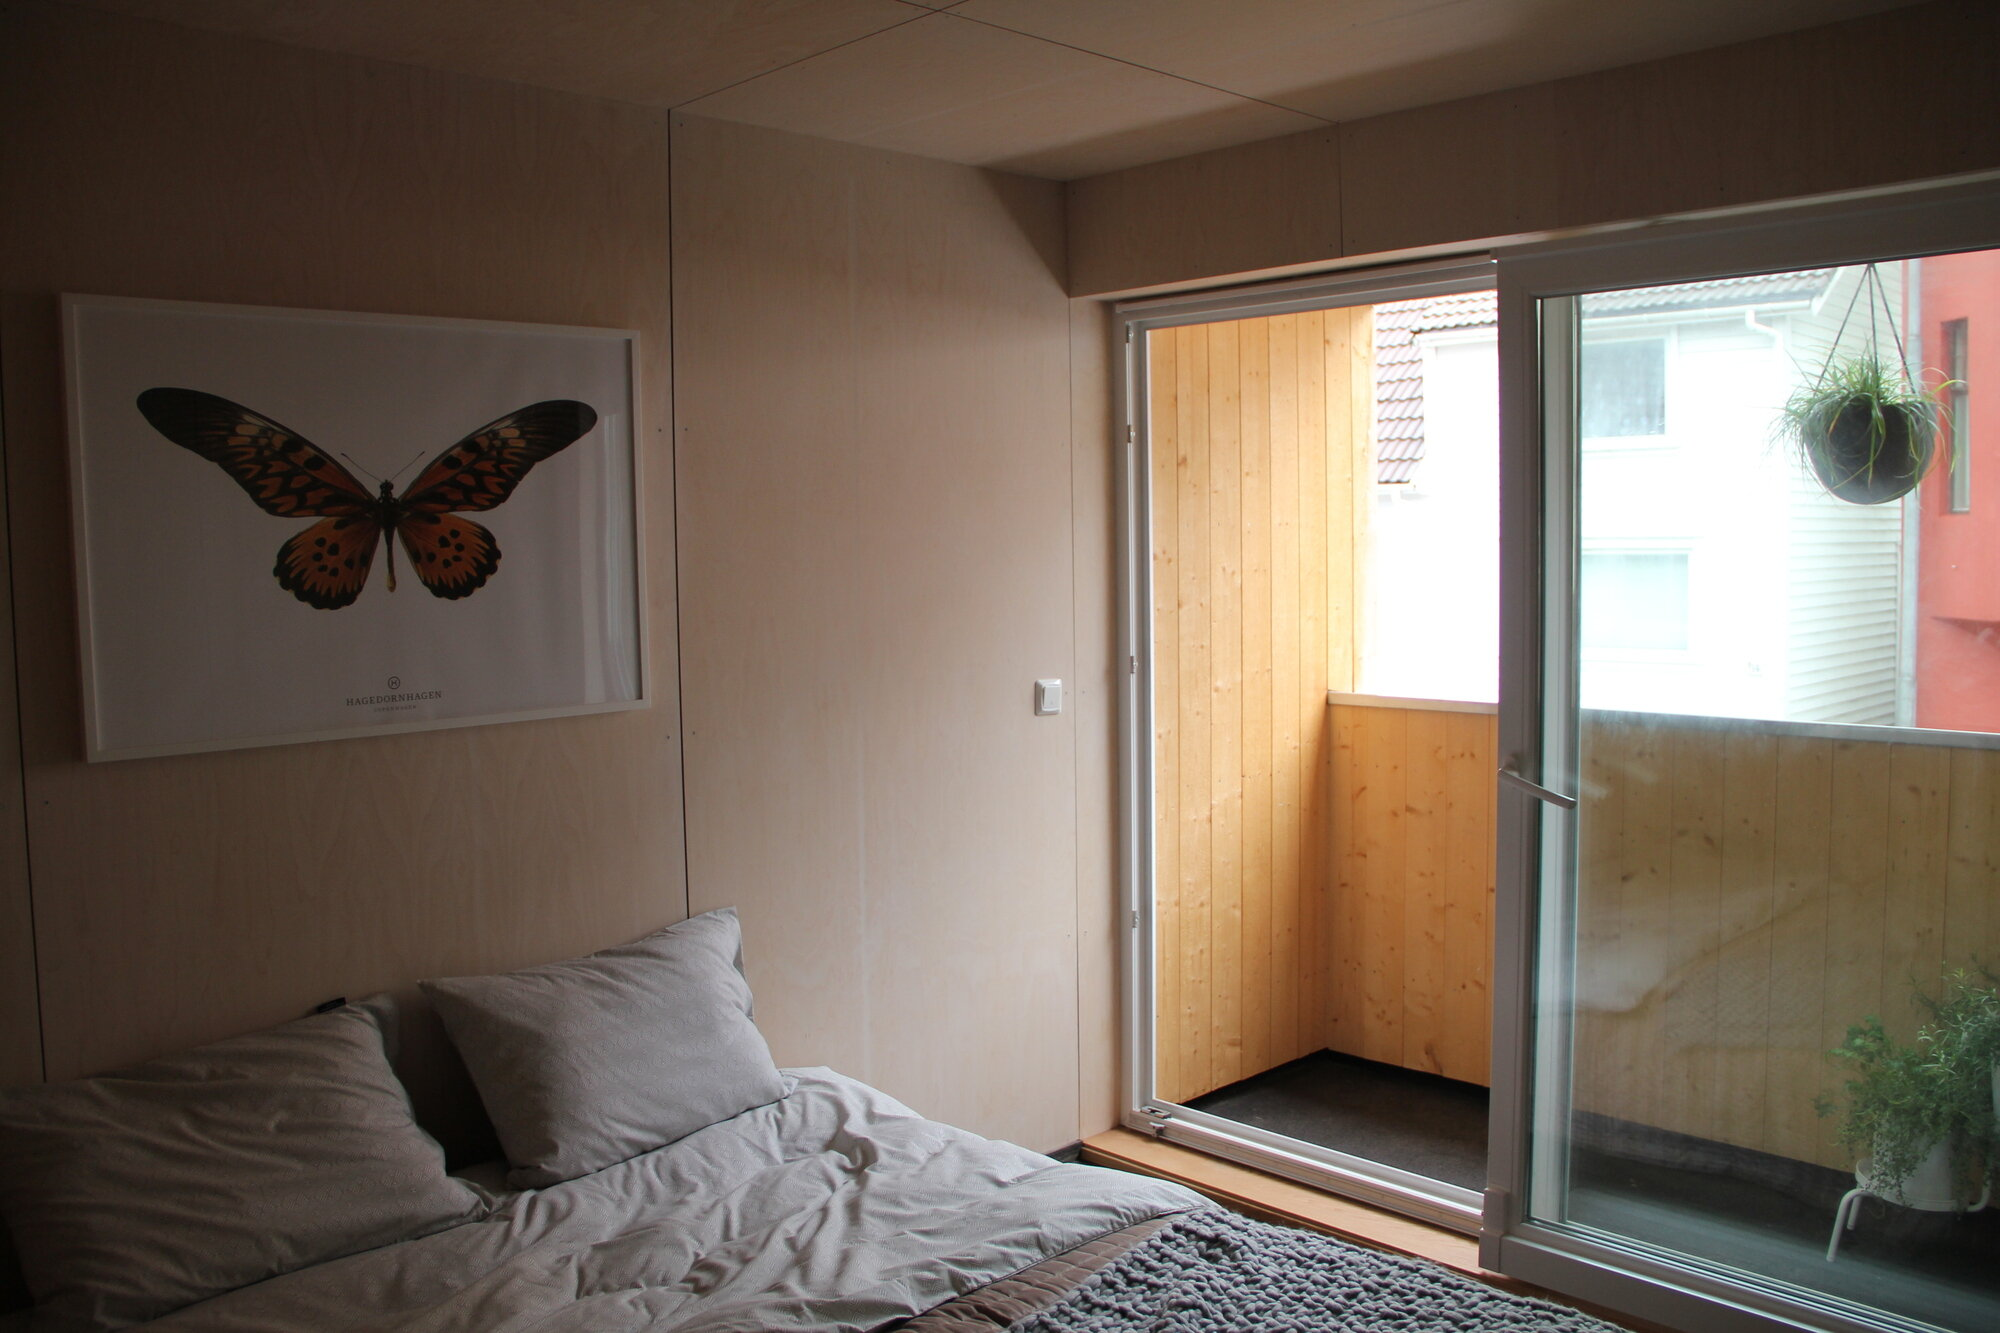 Small Terrace House - House in Stravanger - Austigard Arkitektur - Norway - Bedroom - Humble Homes